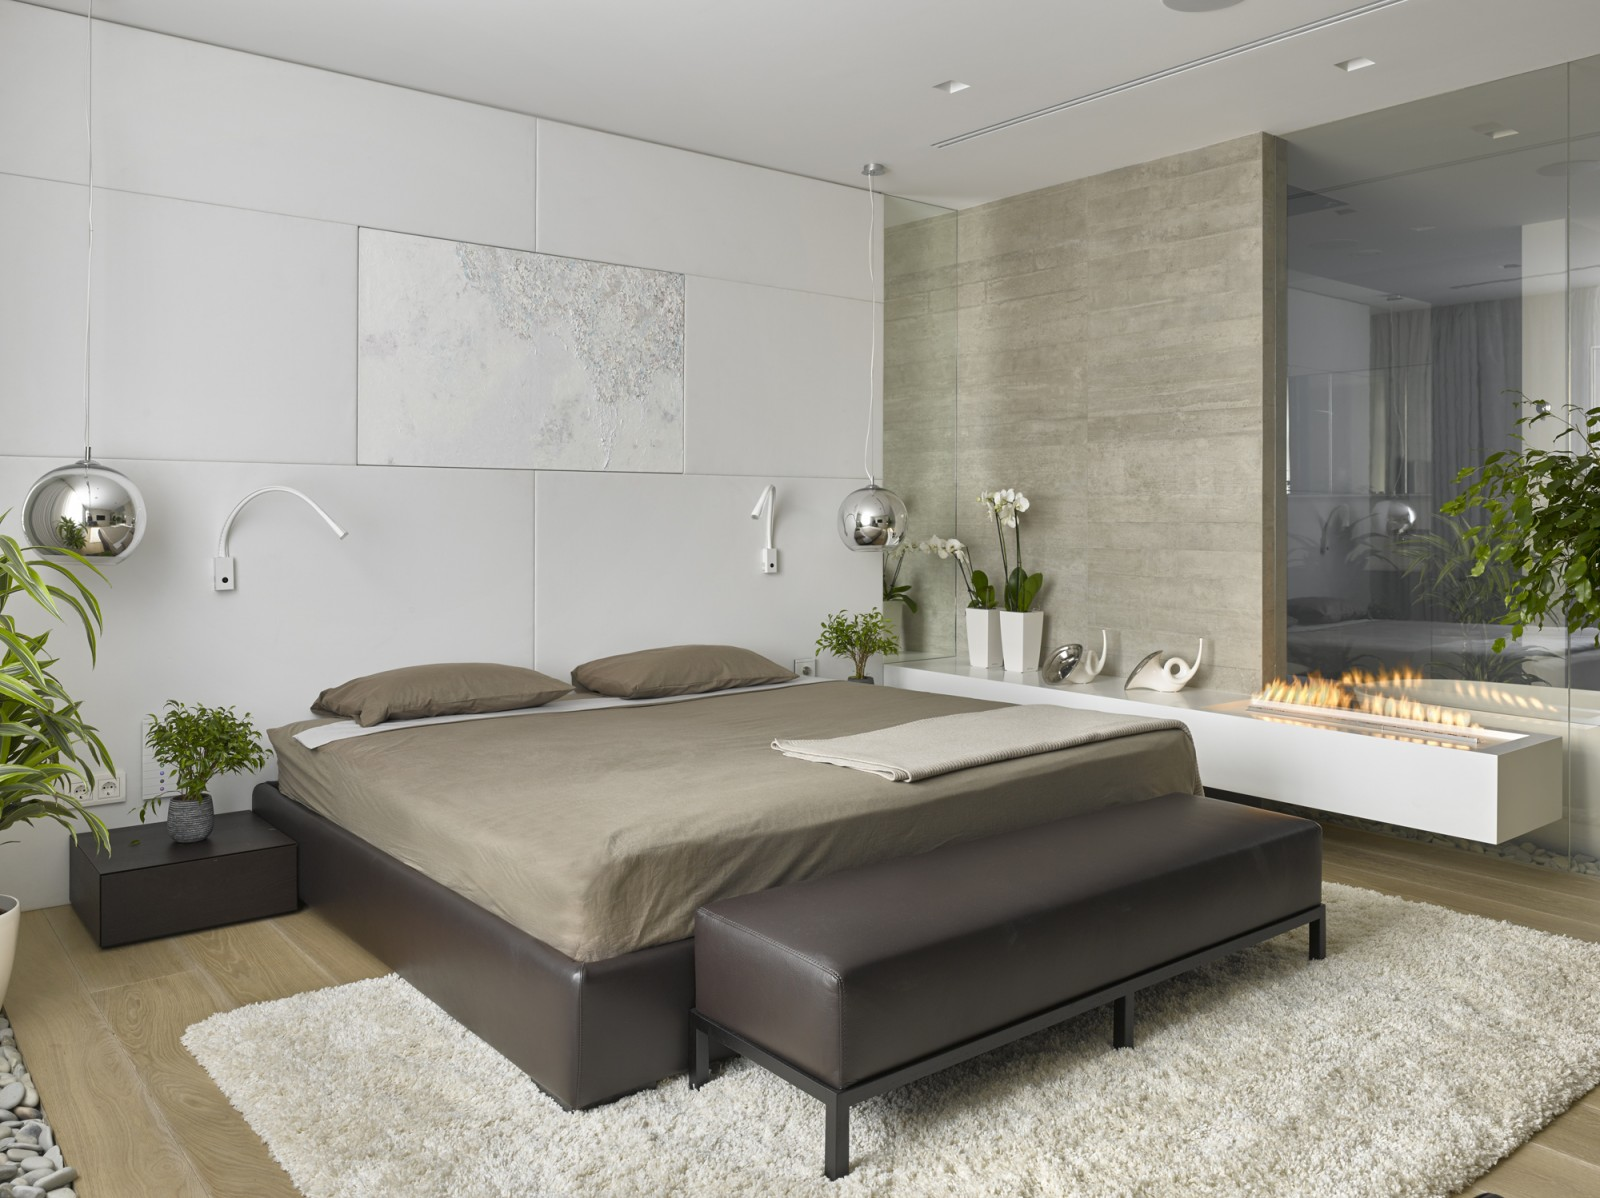 Modern Bedroom Ideas Fresh In Photos of Inspiring